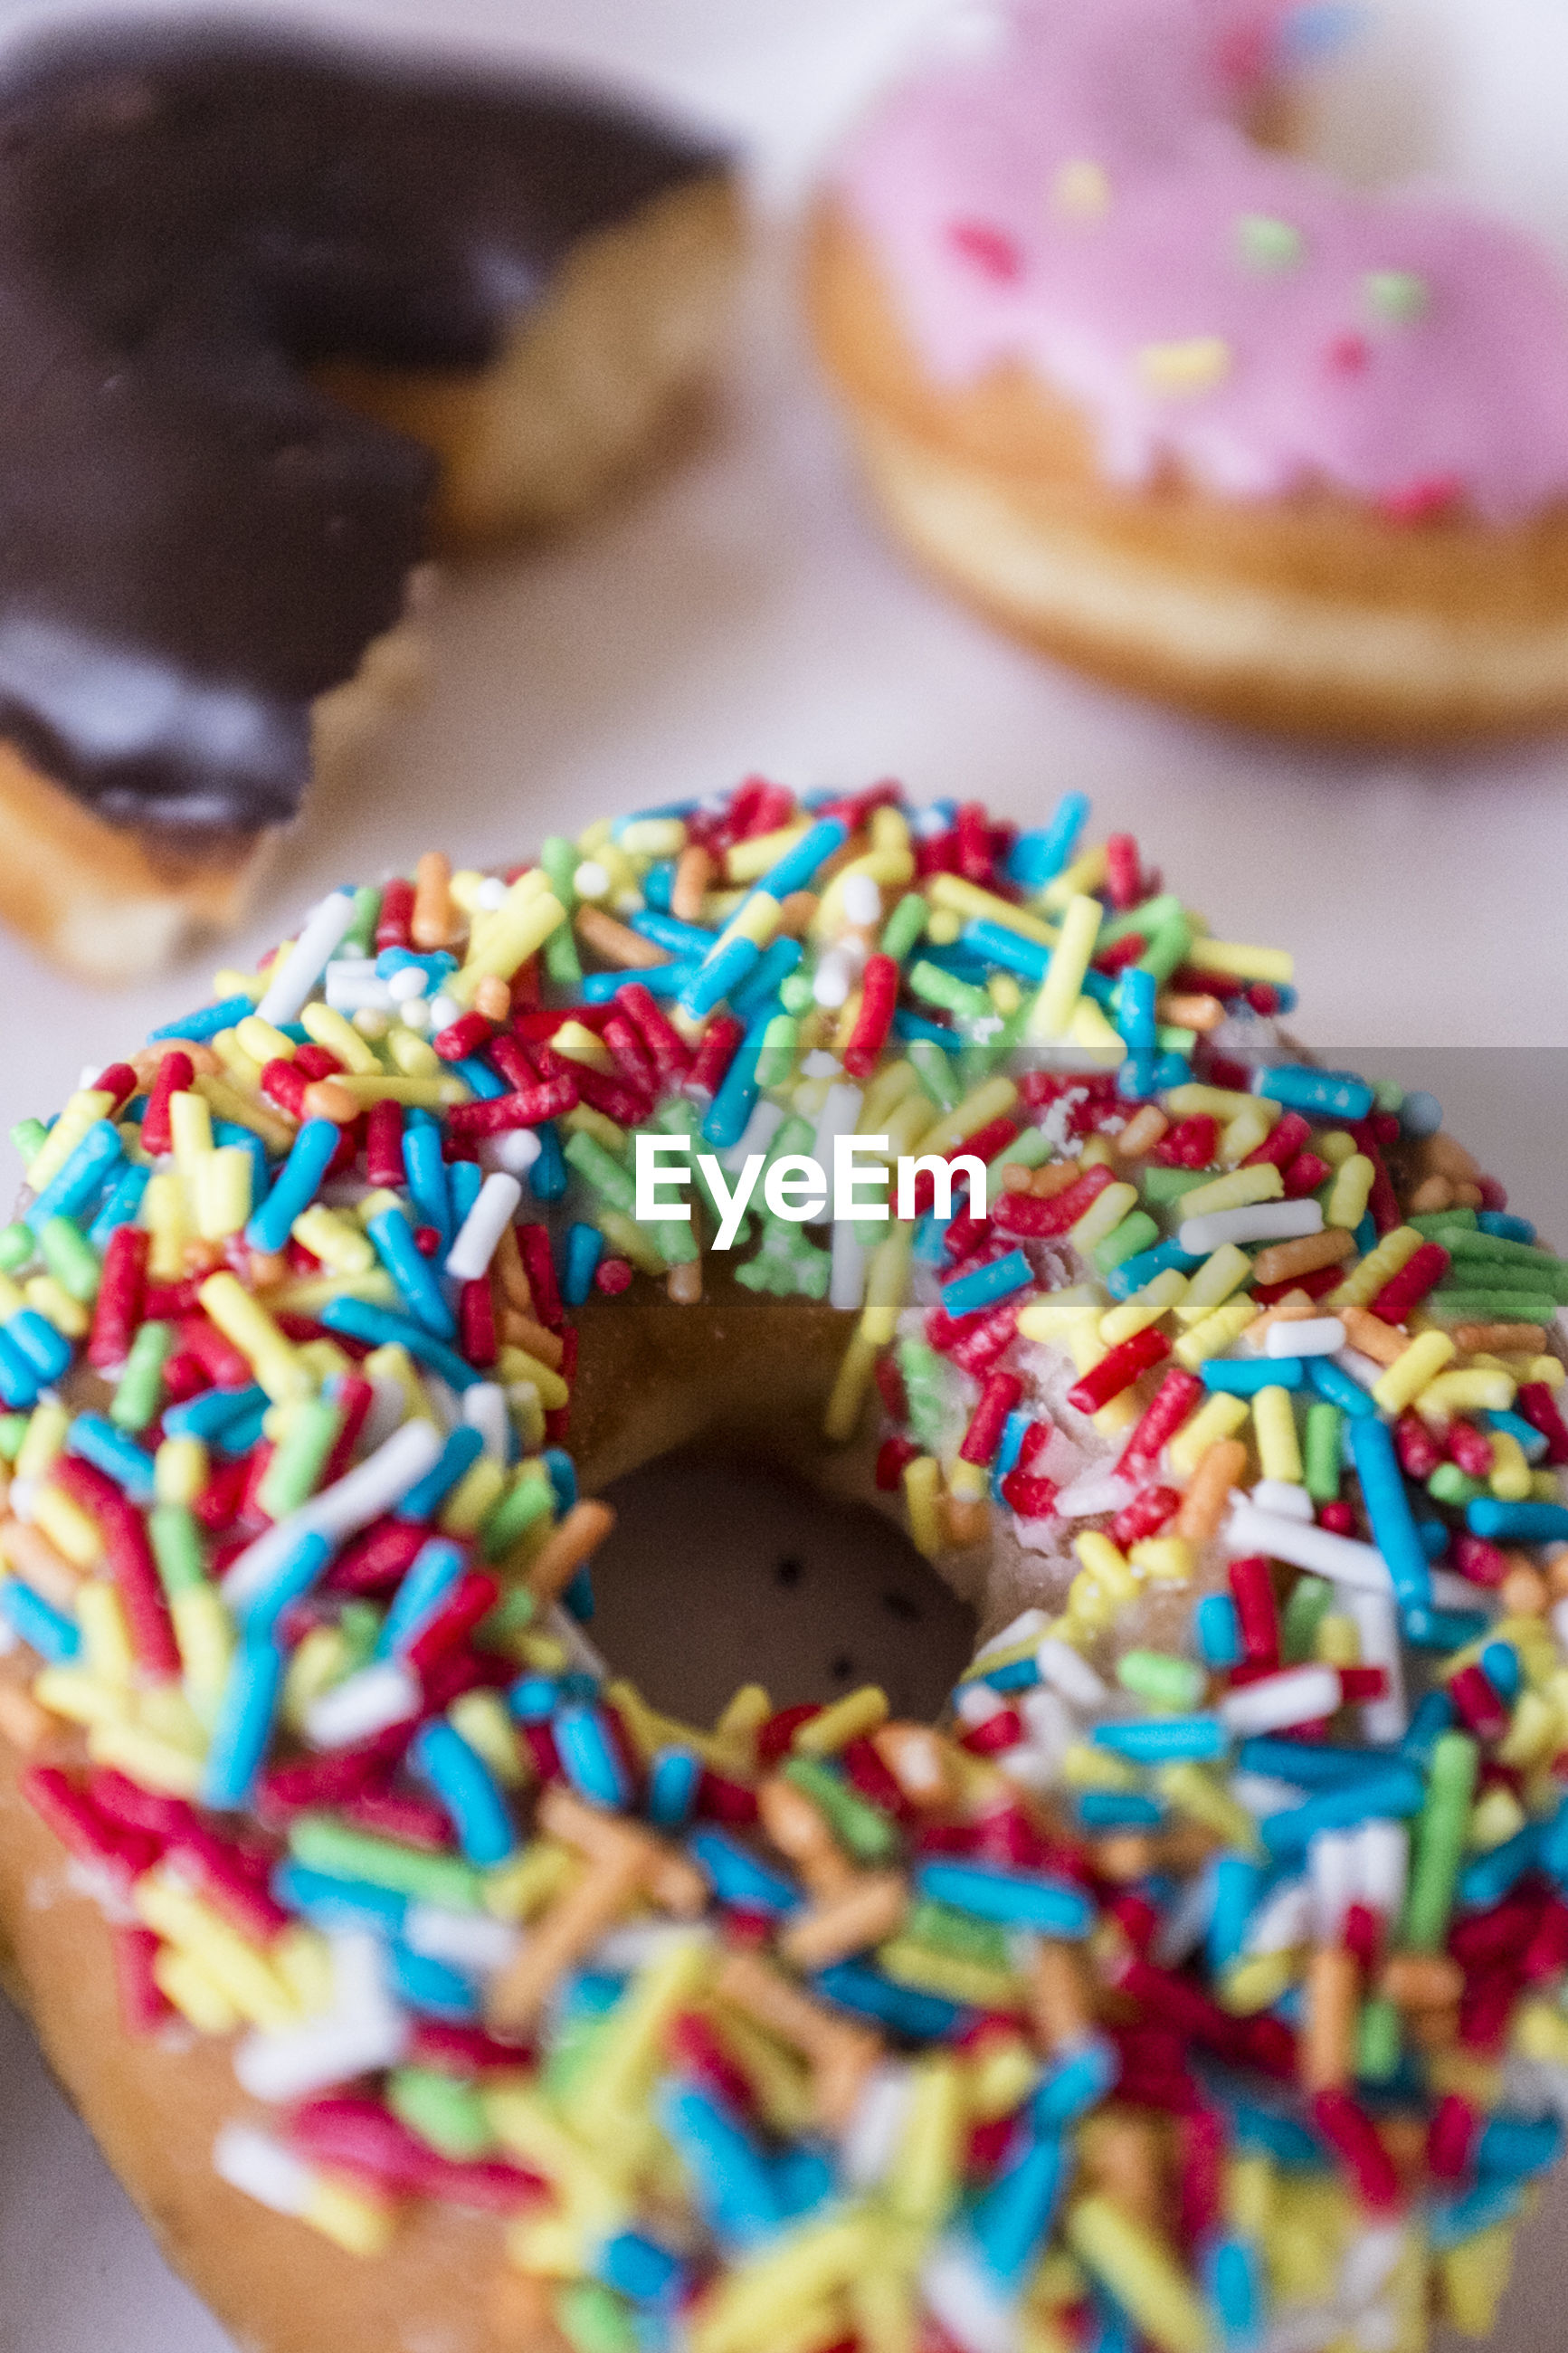 Baked doughnut with colored sprinkles